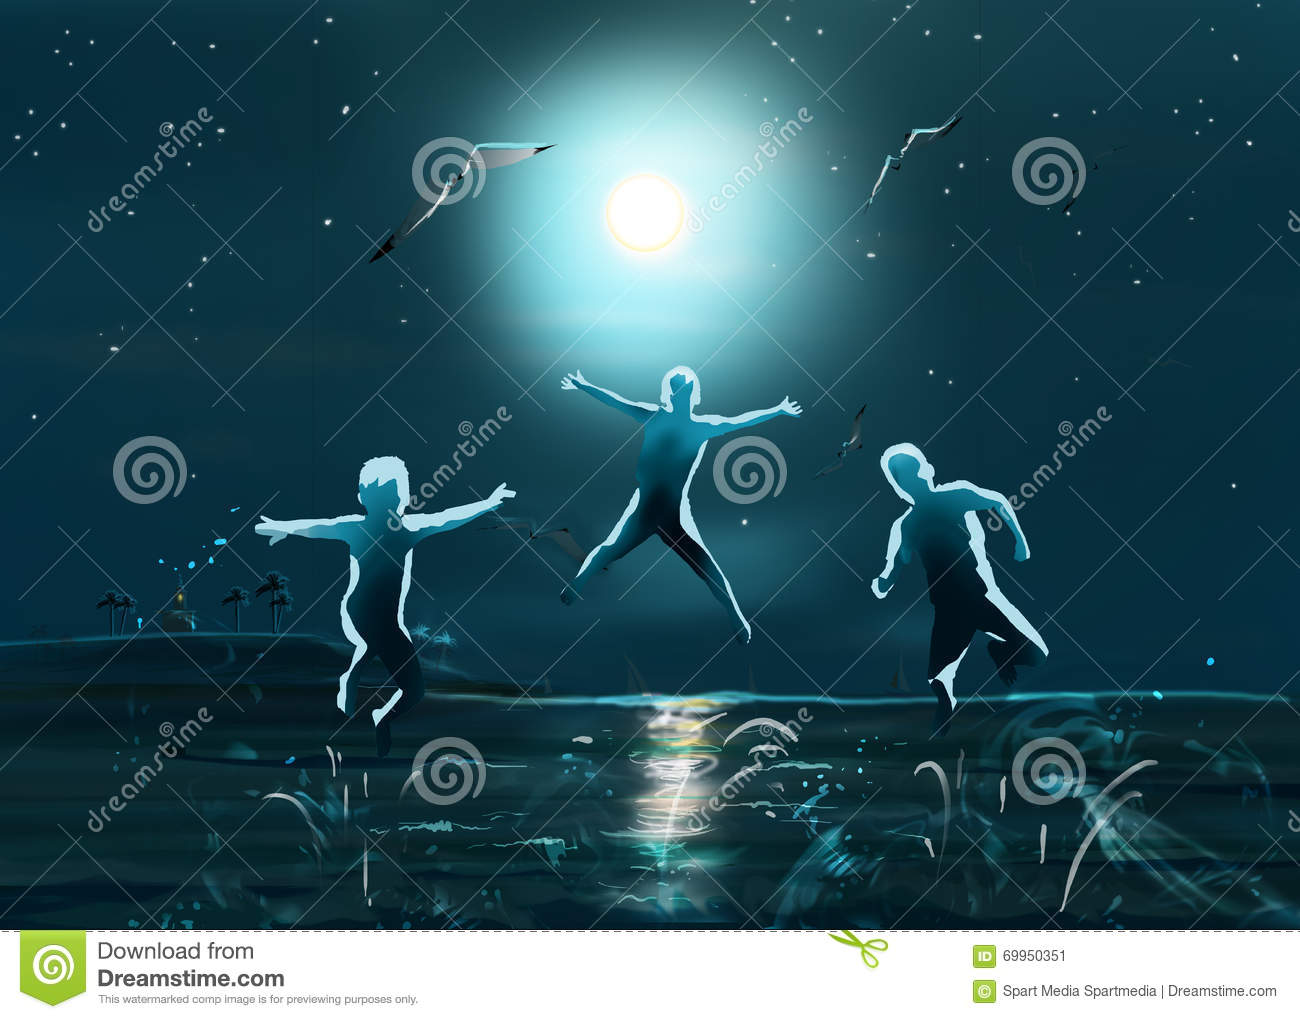 Kids at night with moon royalty free stock photography image - Night Sea Beach Kids Jumping Stock Image